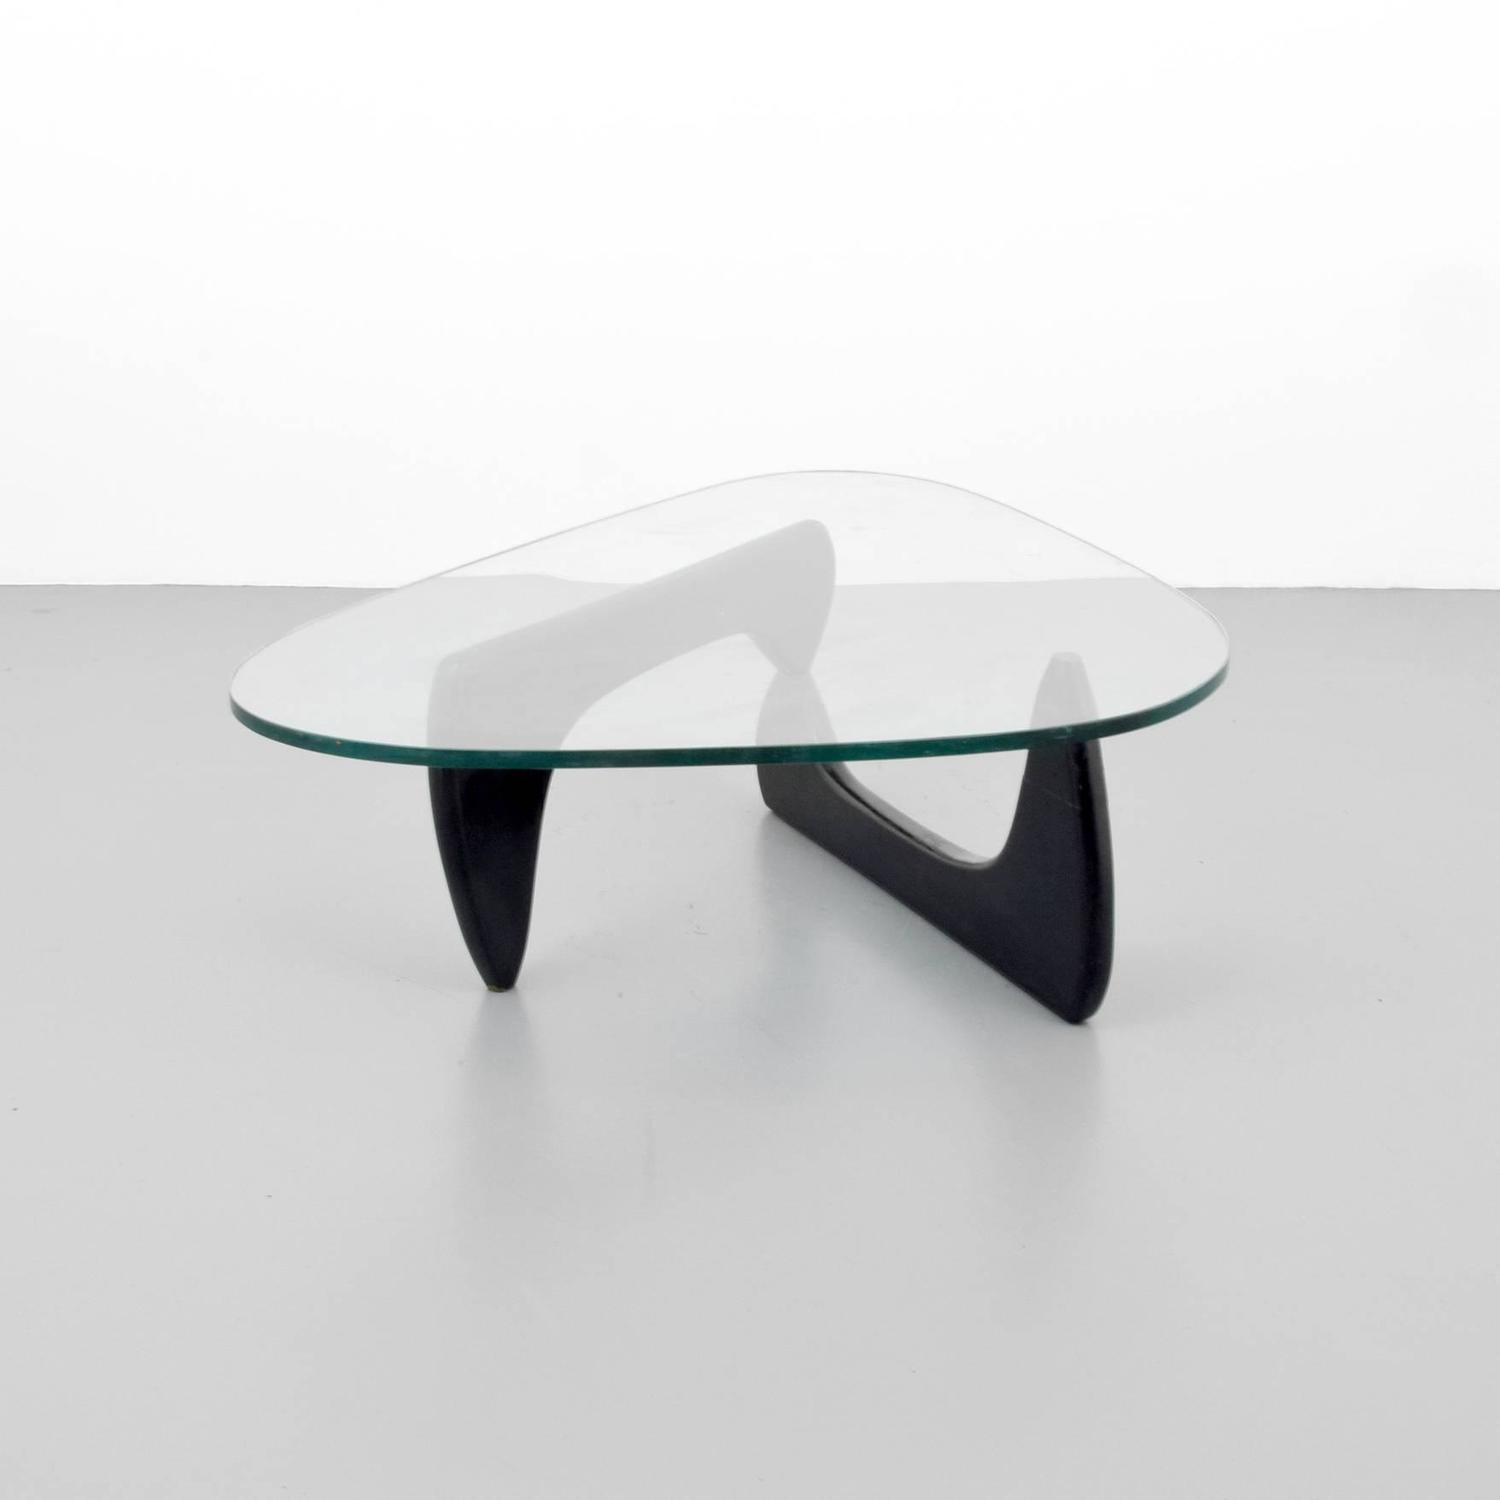 Early edition isamu noguchi table in 1950 table by herman miller 1949 at 1stdibs Herman miller noguchi coffee table